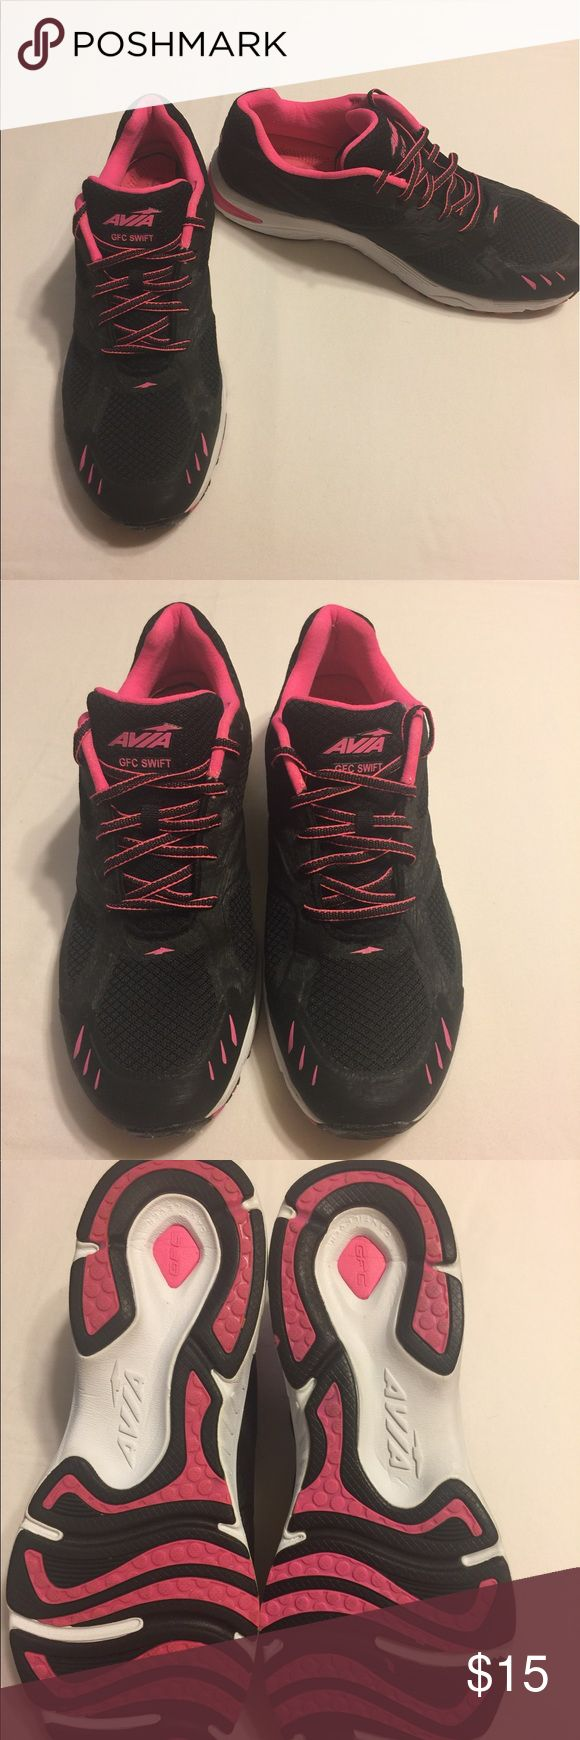 Size 9 Avia GFC Swift Women's sneakers/shoes Size 9 Avia GFC Swift Women's Sneakers, black and pink, preloved but New like condition, only worn once Avia Shoes Athletic Shoes